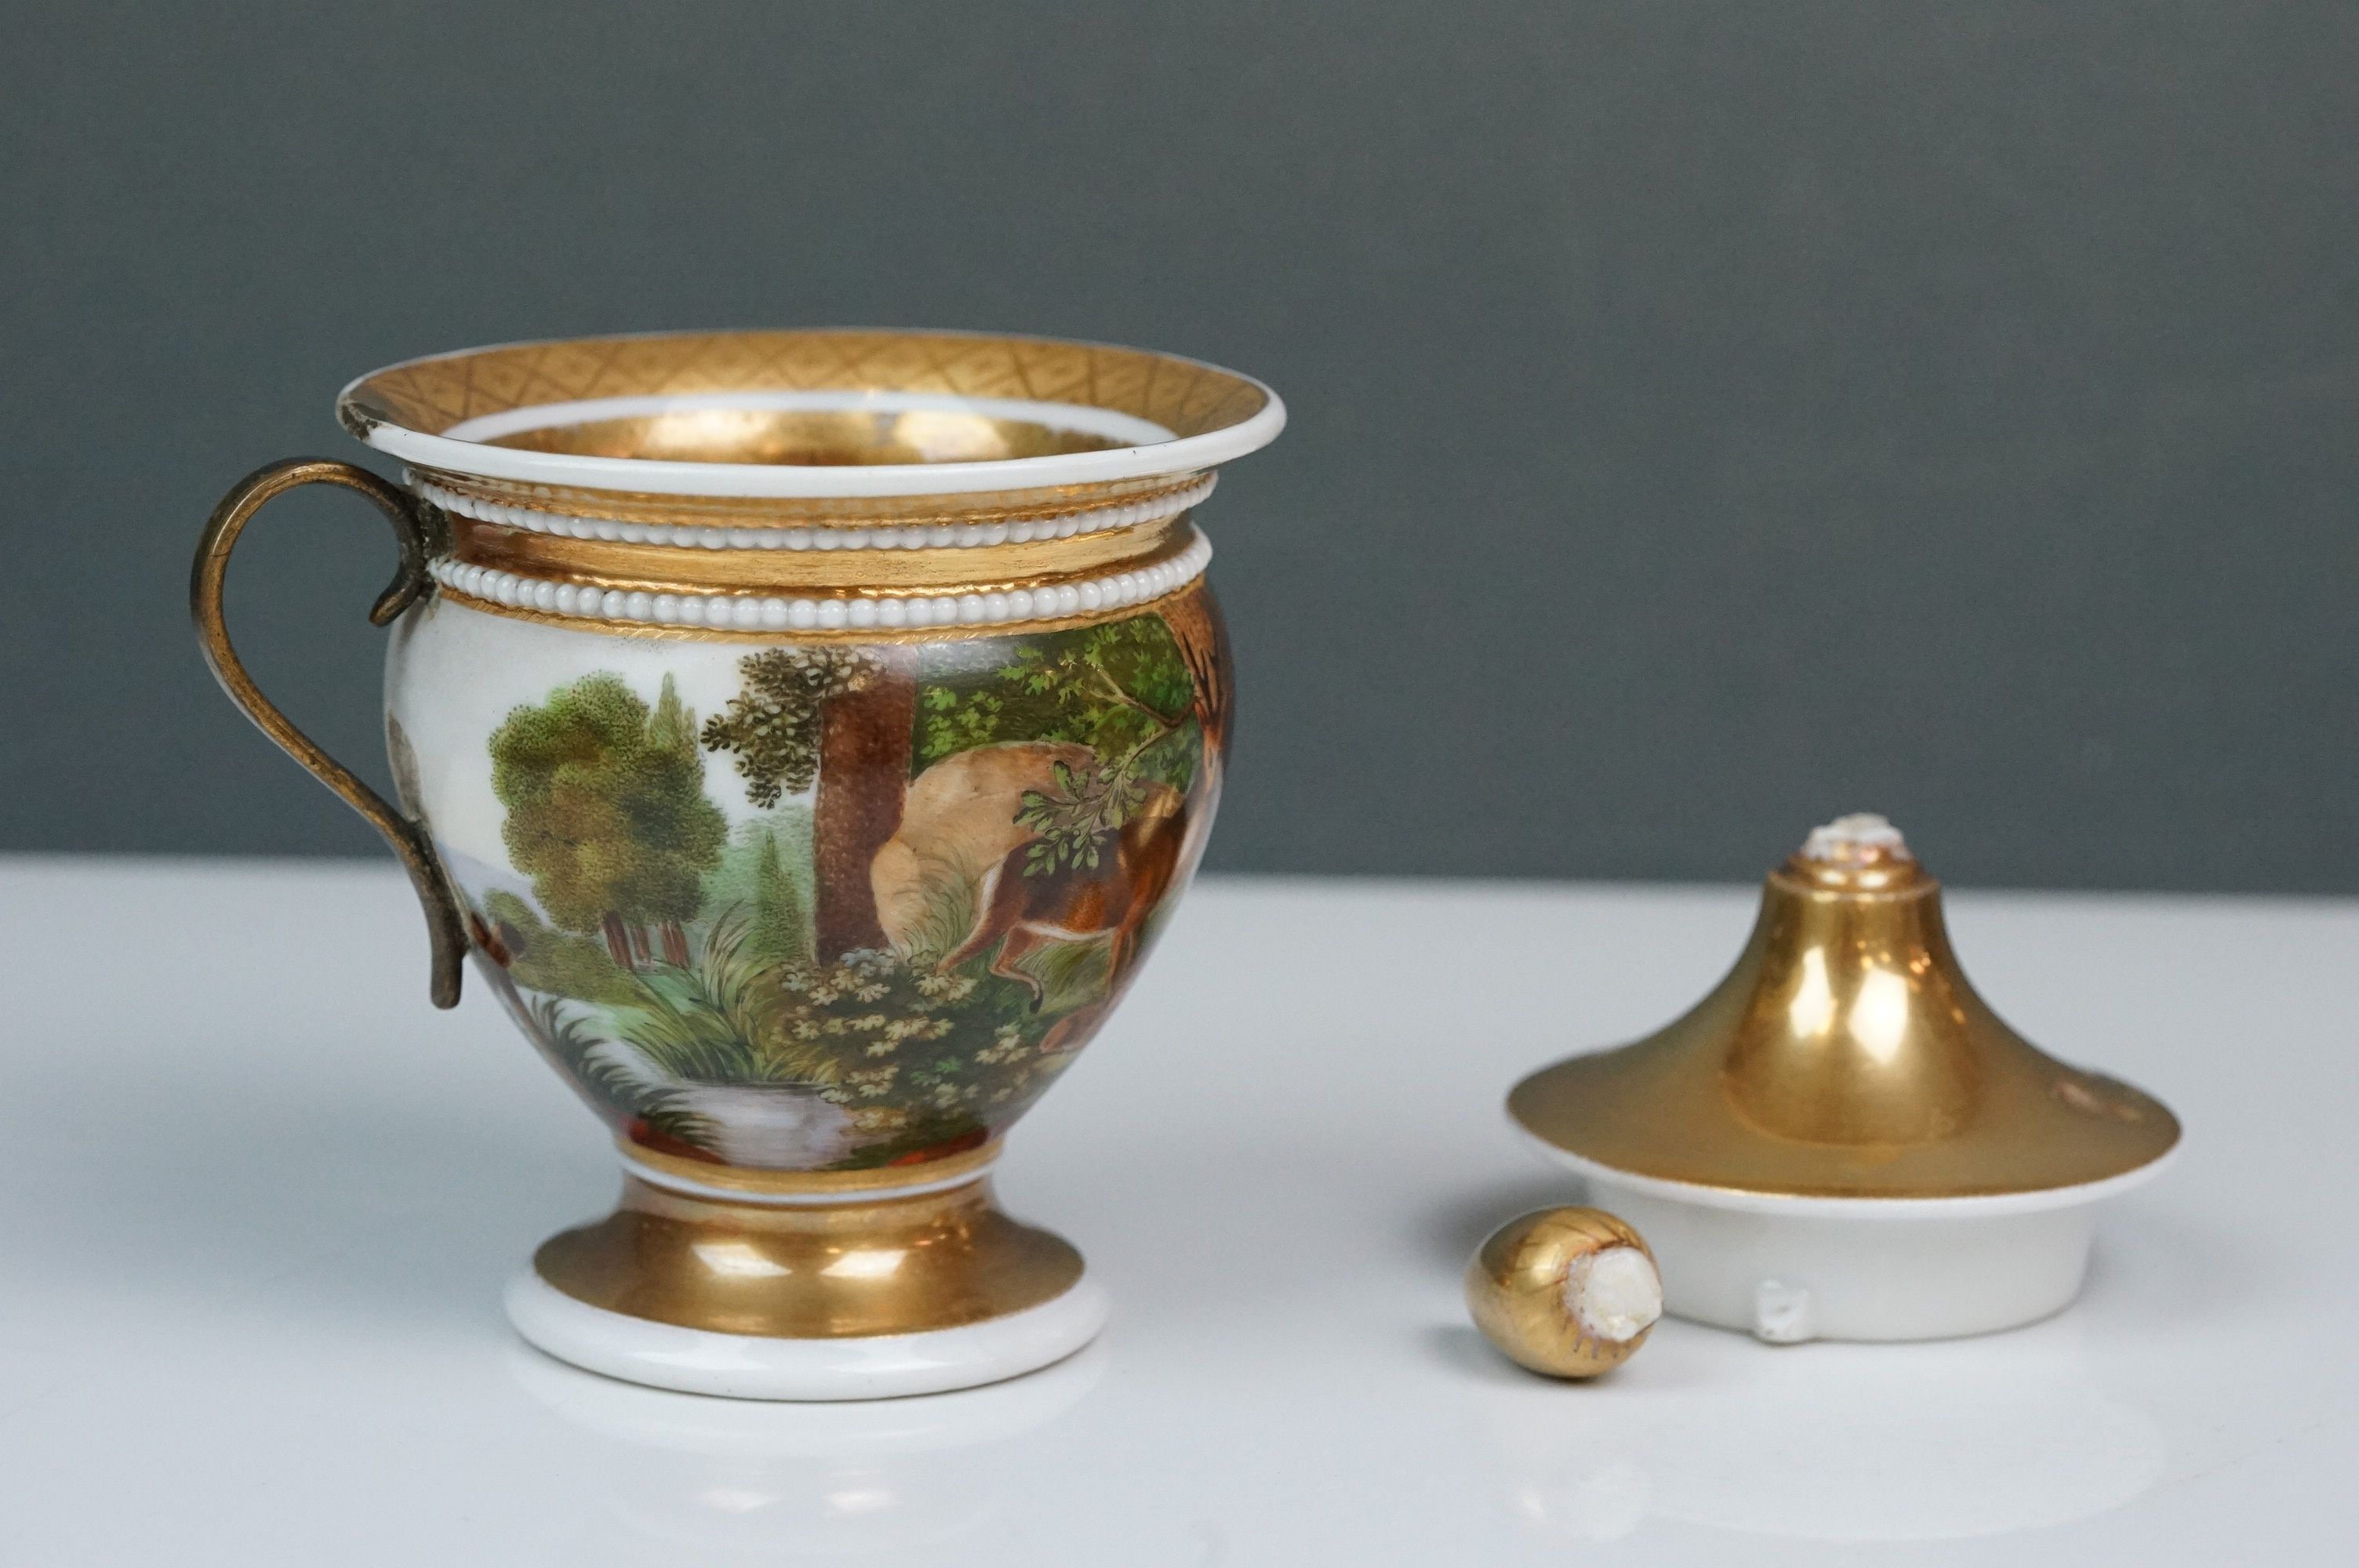 Pair of hand painted Dresden cups, each depicting a different scene: castle and lake scene with - Image 7 of 10